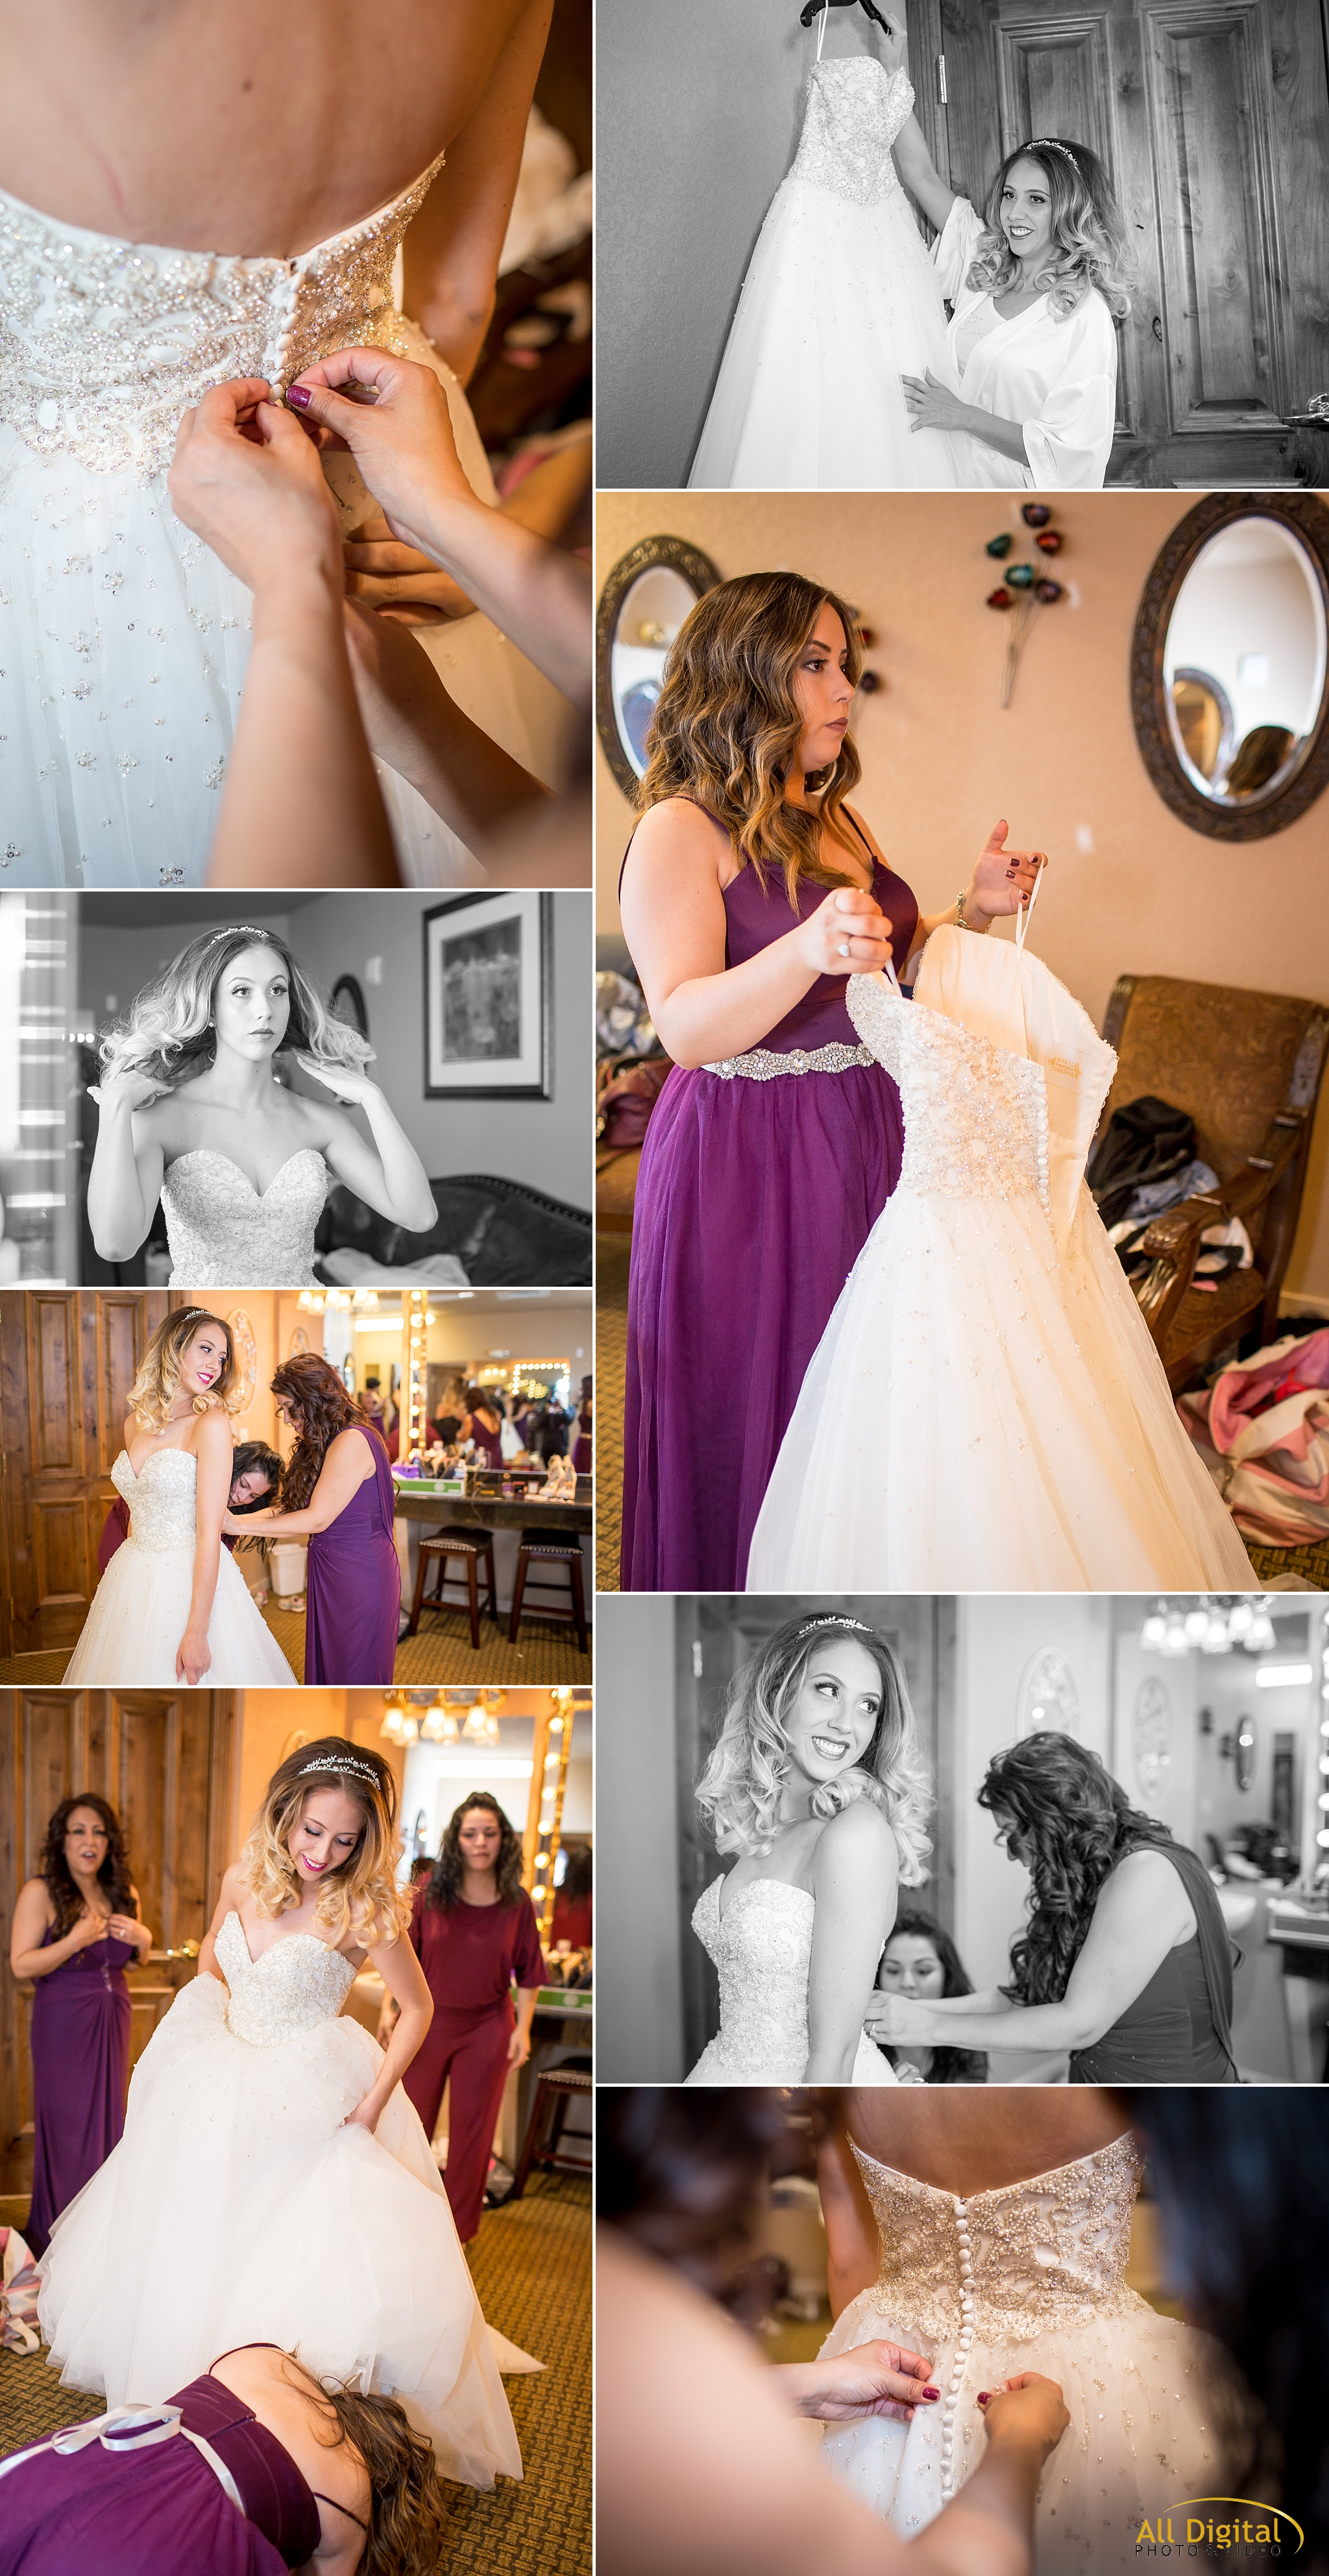 Getting into the dress at Stonebrook Manor.